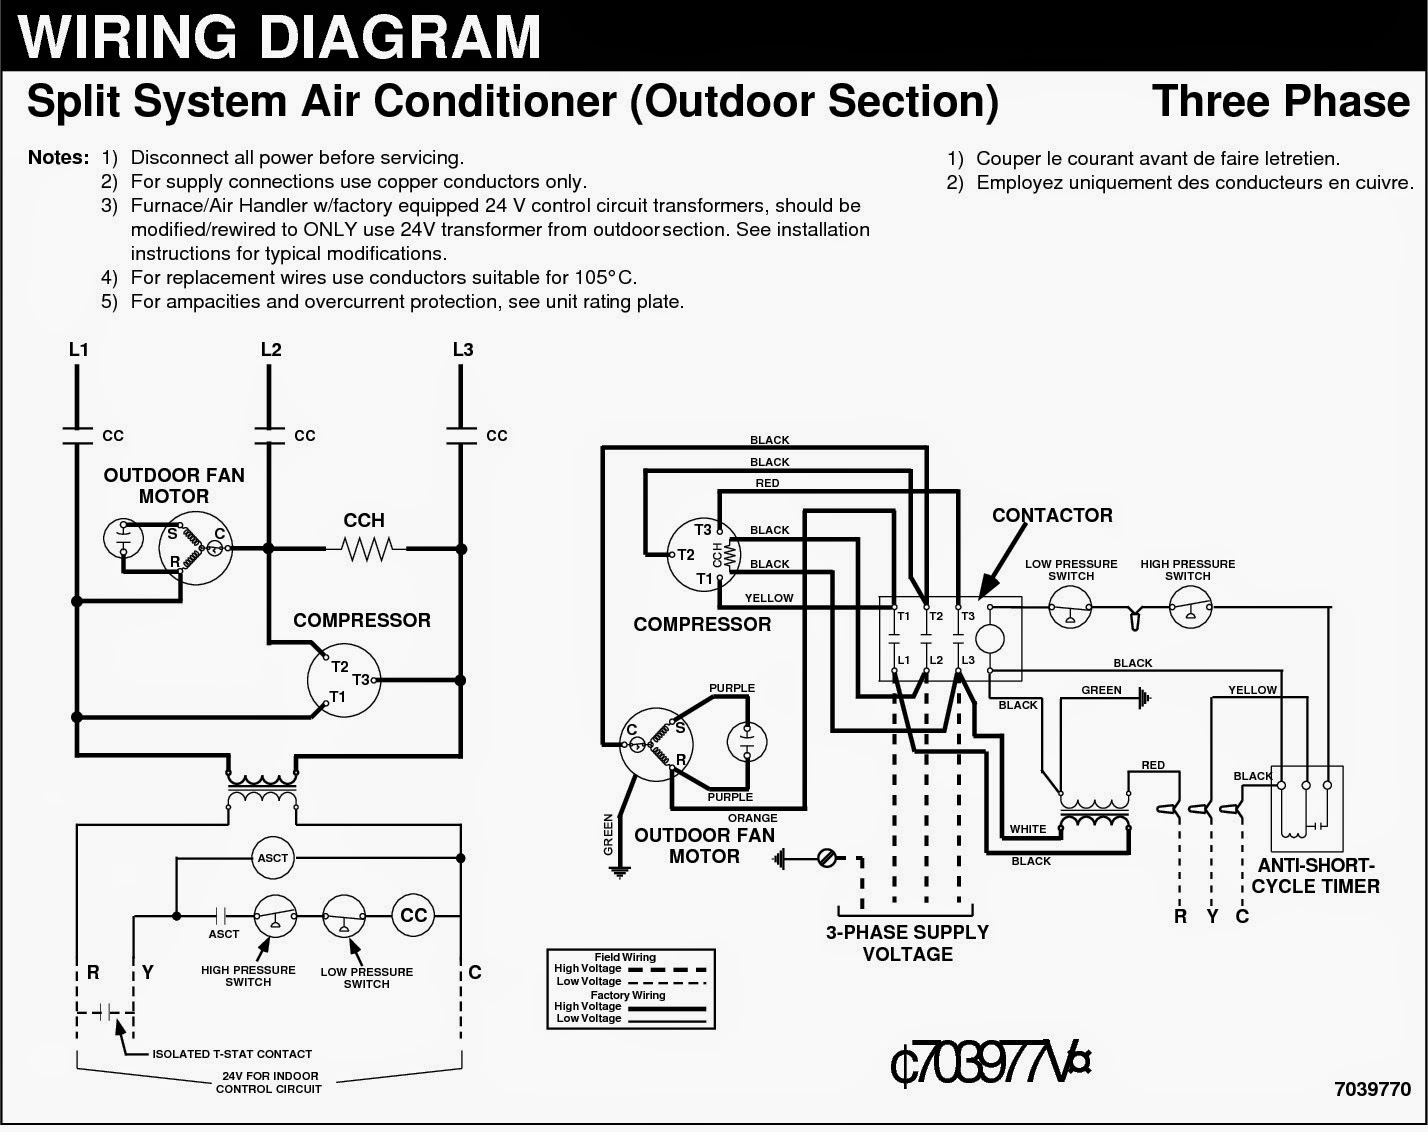 3+phase 3 phase socket wiring diagram 3 phase 5 pin plug wiring diagram air compressor wiring diagram 3 phase at mifinder.co